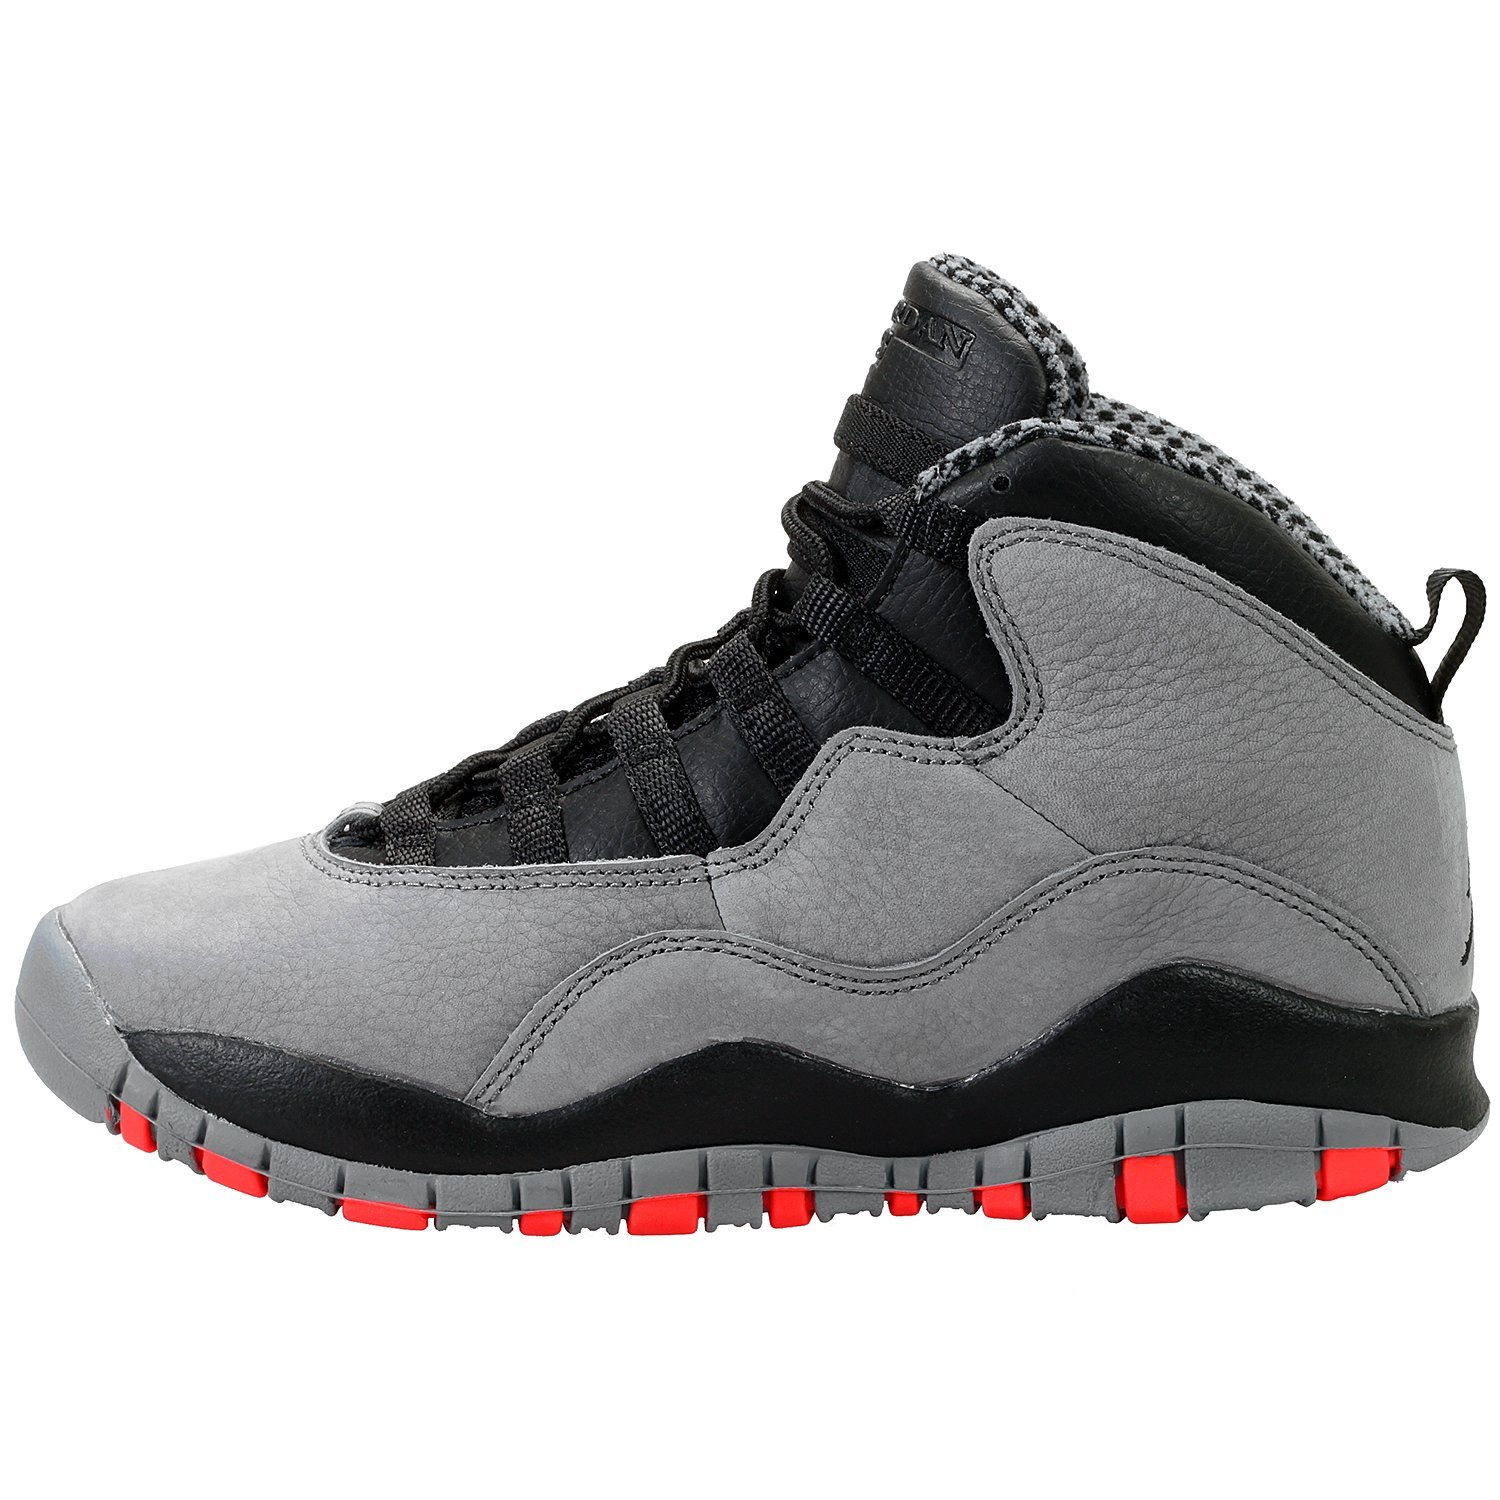 Nike Air Jordan 10 Retro Kids (GS) Grade School Cool Grey/Black/Infrared 310806-023